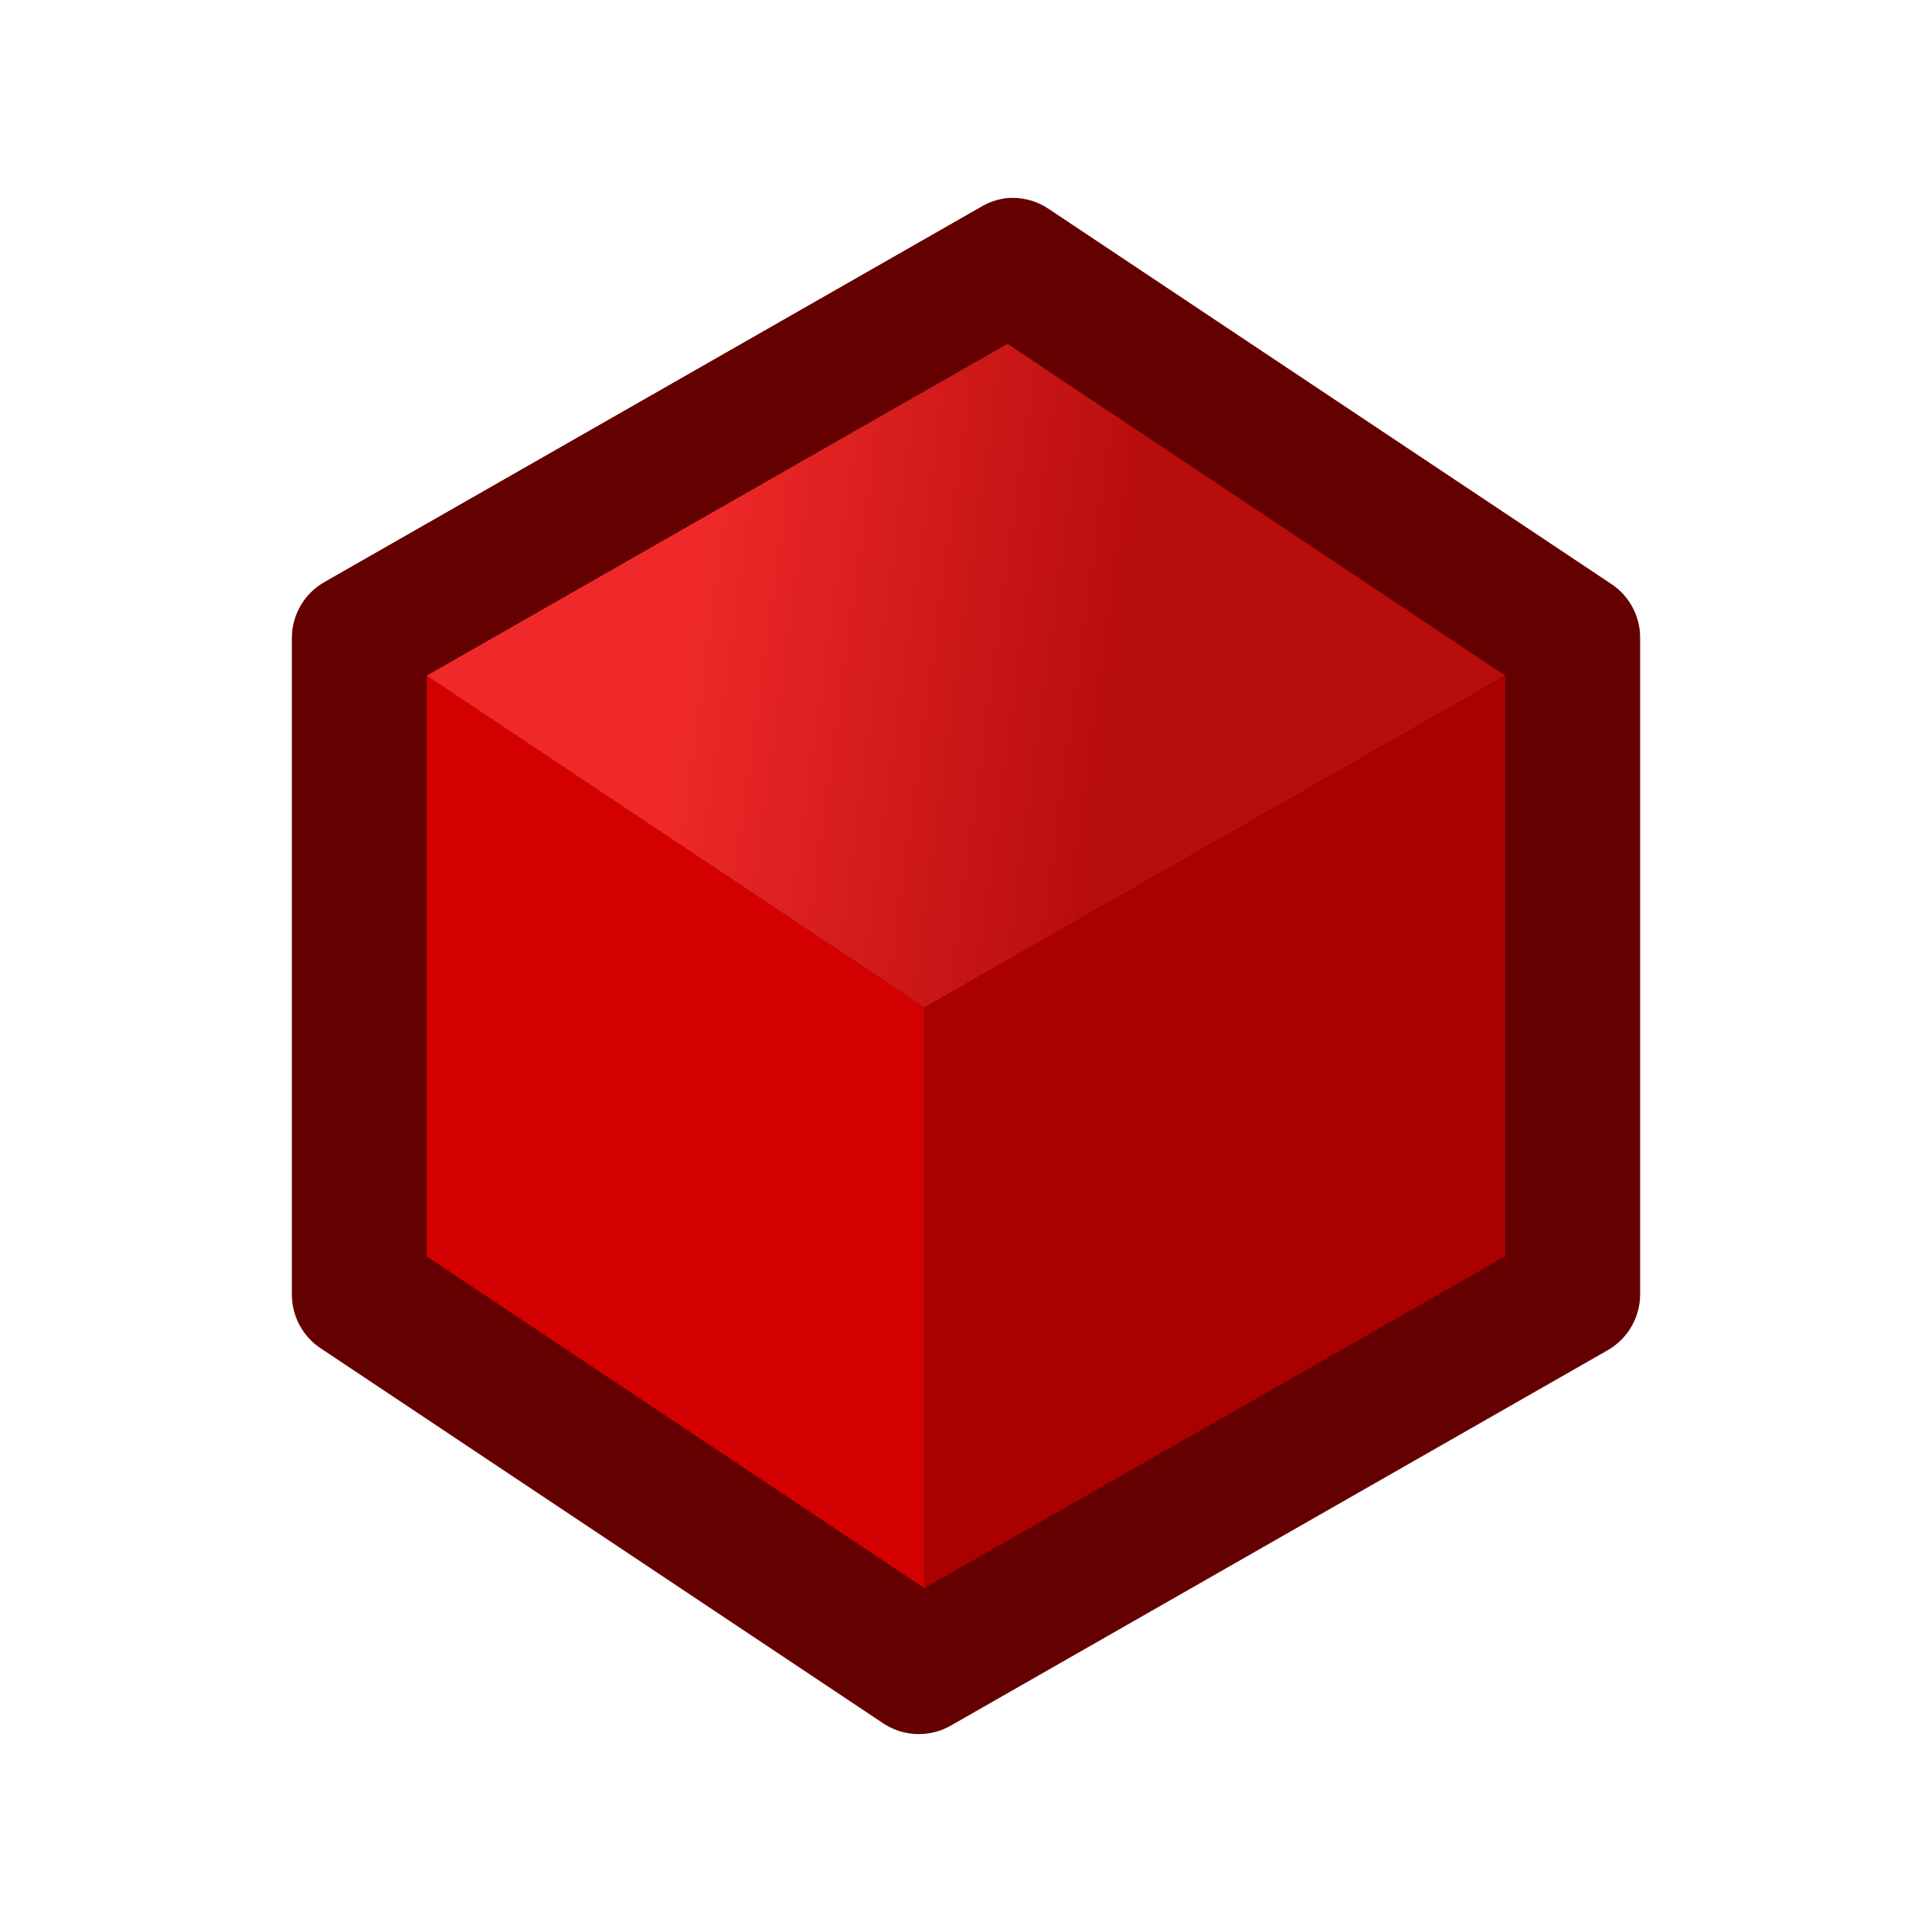 icon-cube-red by jean_victor_balin